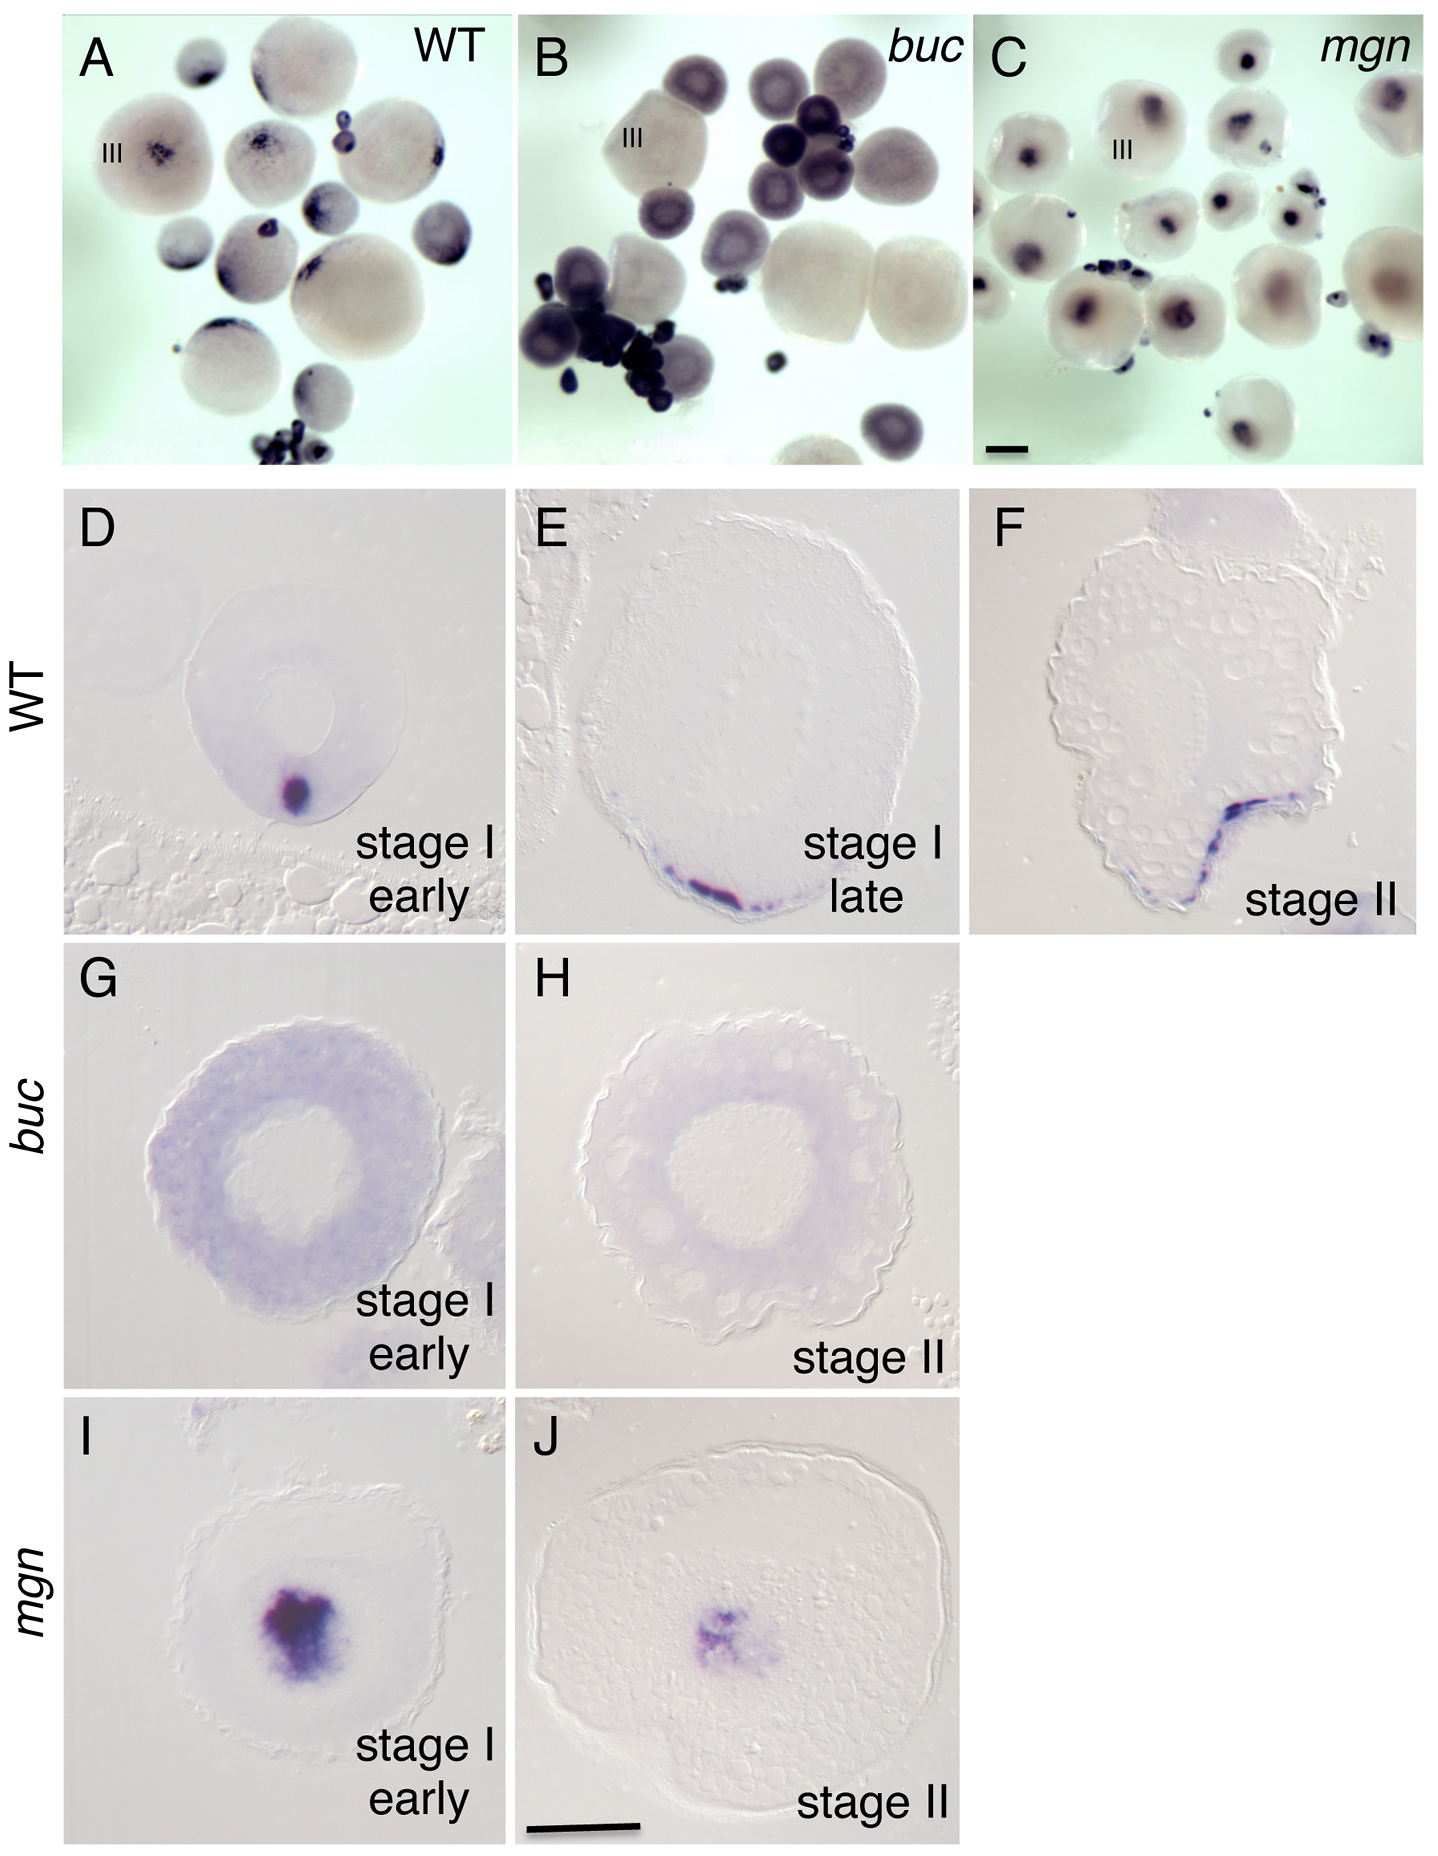 Localization of <i>grip2a</i> mRNA in wild-type and mutant oocytes.